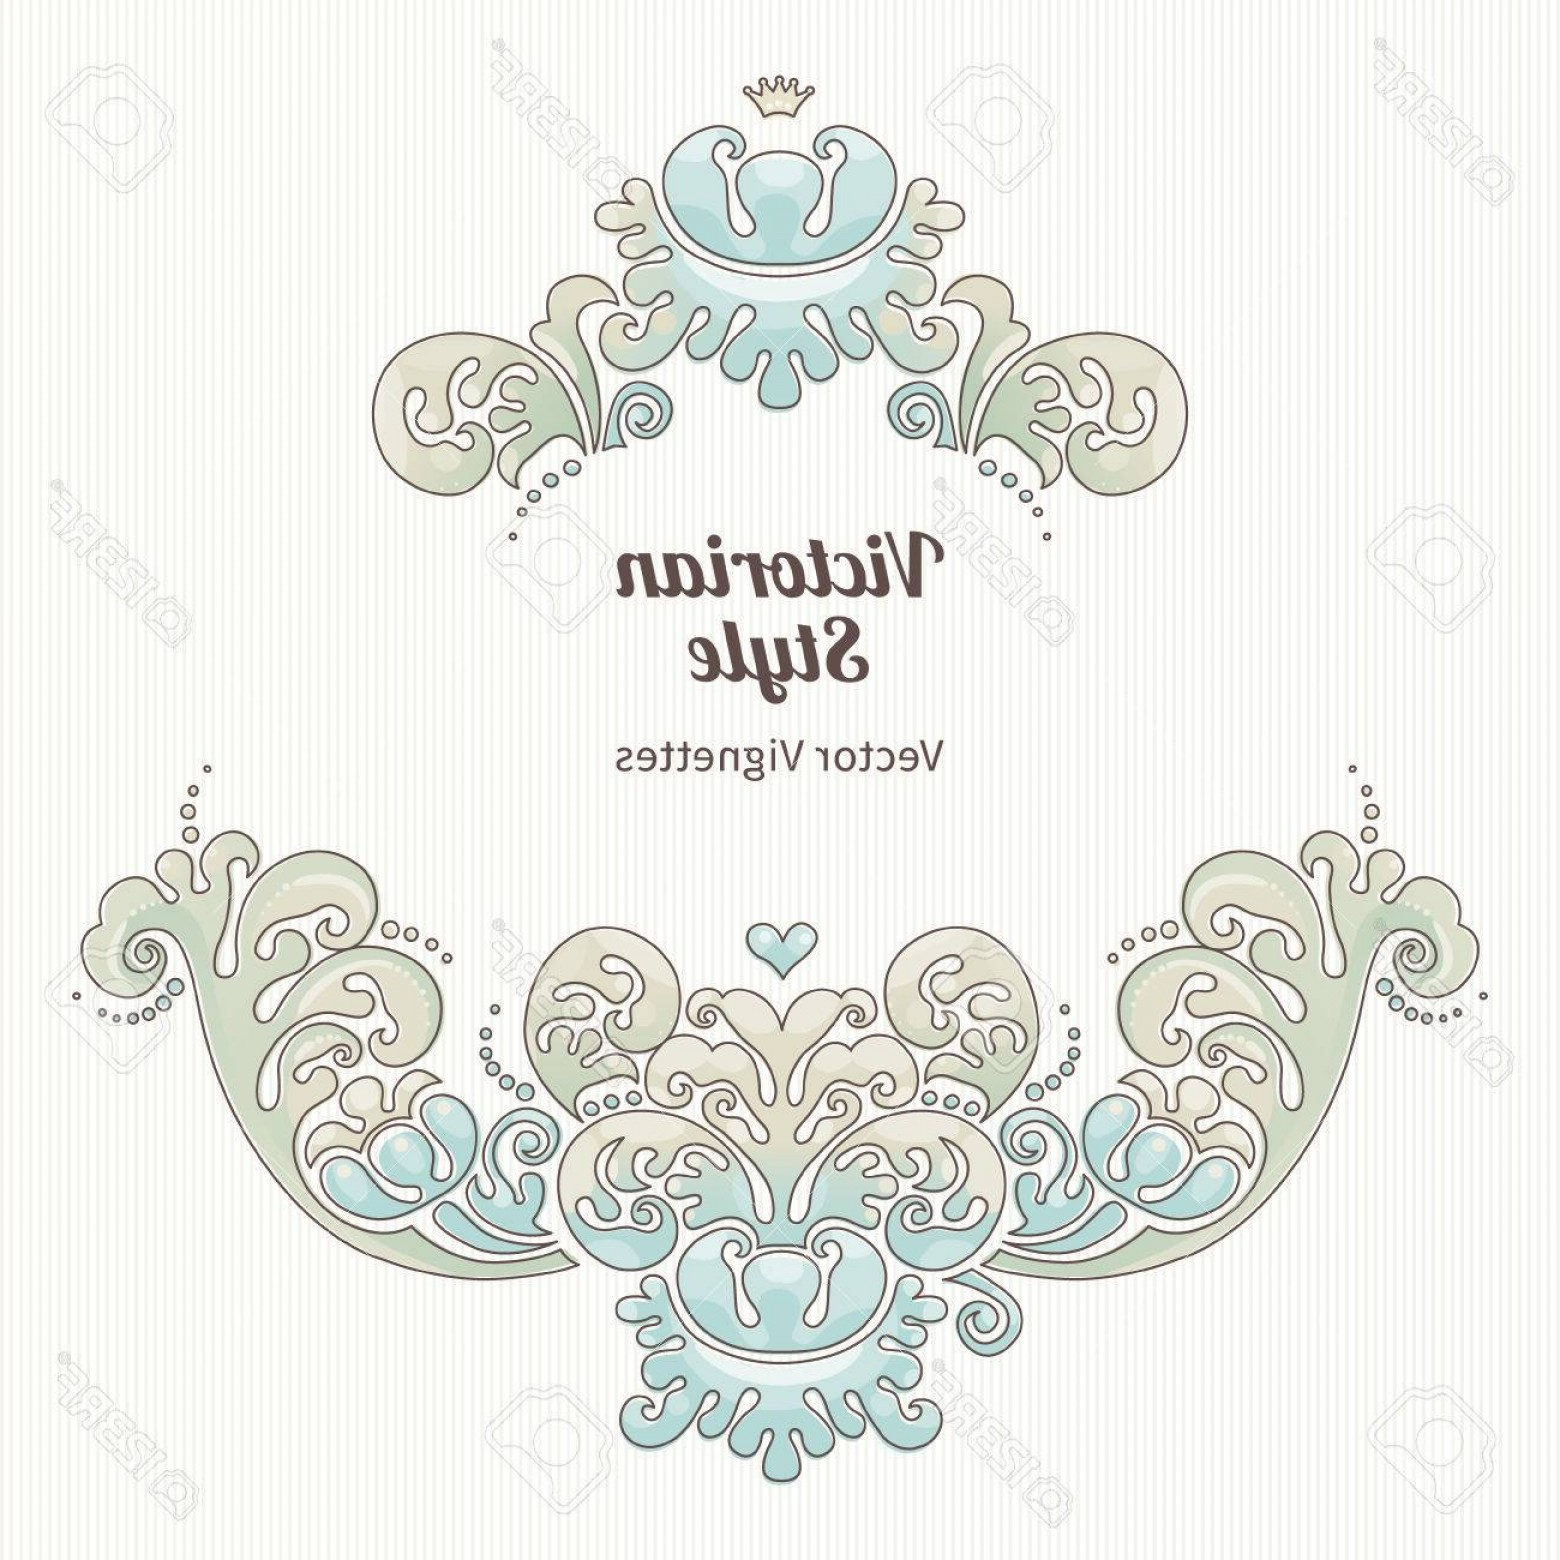 Aqua Victorian Vectors: Photostock Vector Vector Floral Vignette In Victorian Style Ornate Element For Design Place For Text Ornament For Wedd